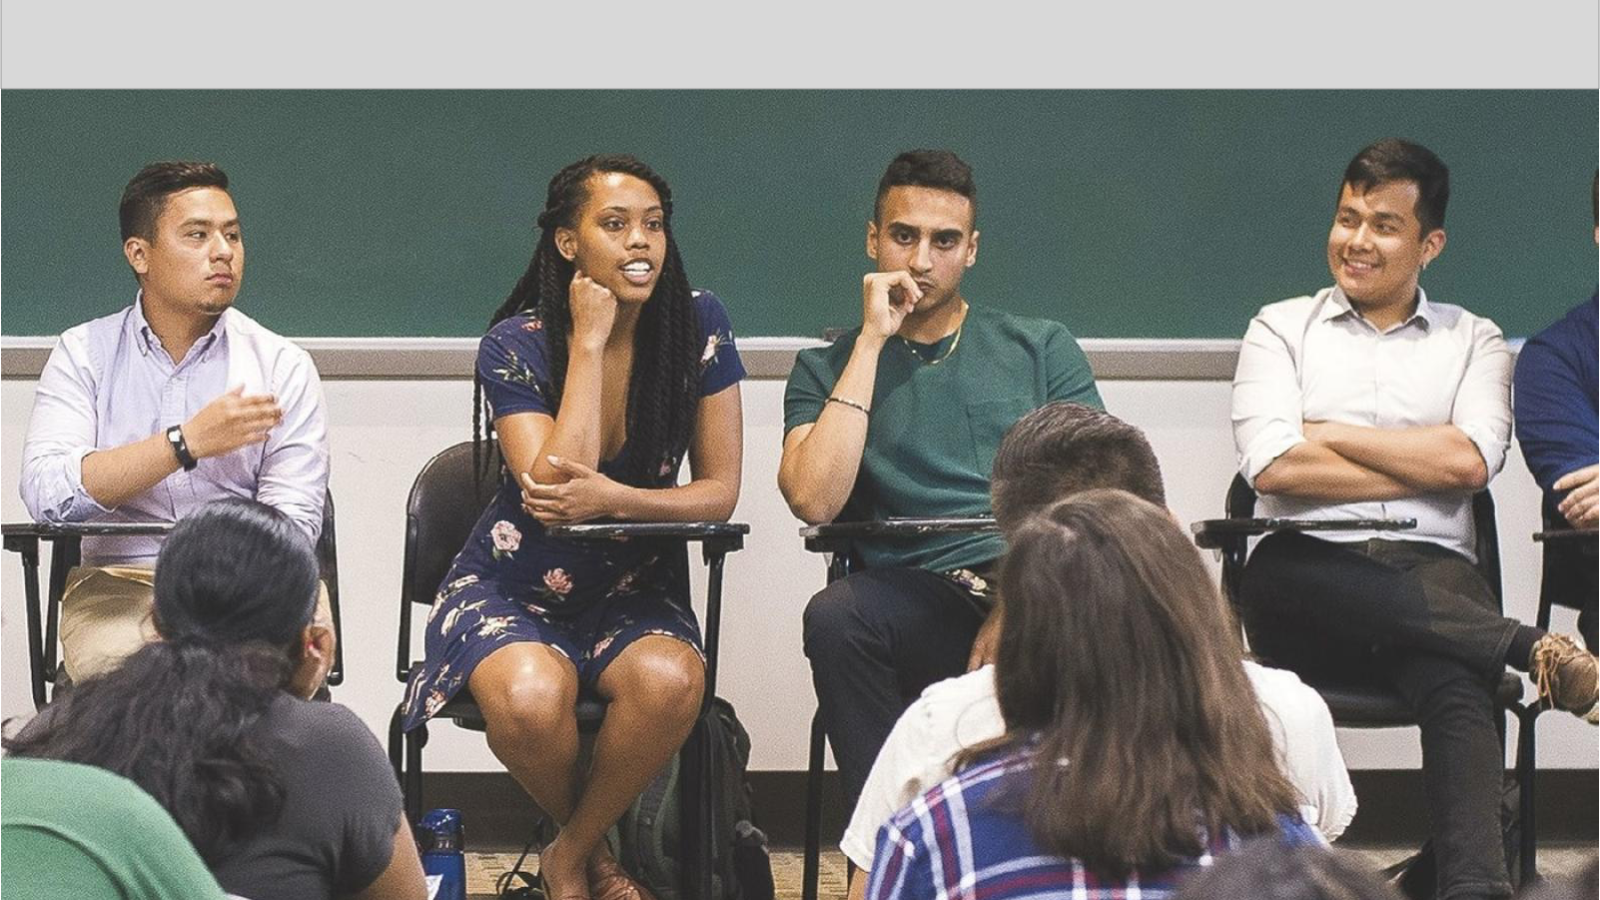 Juan Moreno (F'19), Eriss Donaldson (C'19), Hash Singh (C'20), and Diego Tum-Monge (C'19), share insight about the GU student experience during the Transitioning to College summer program.